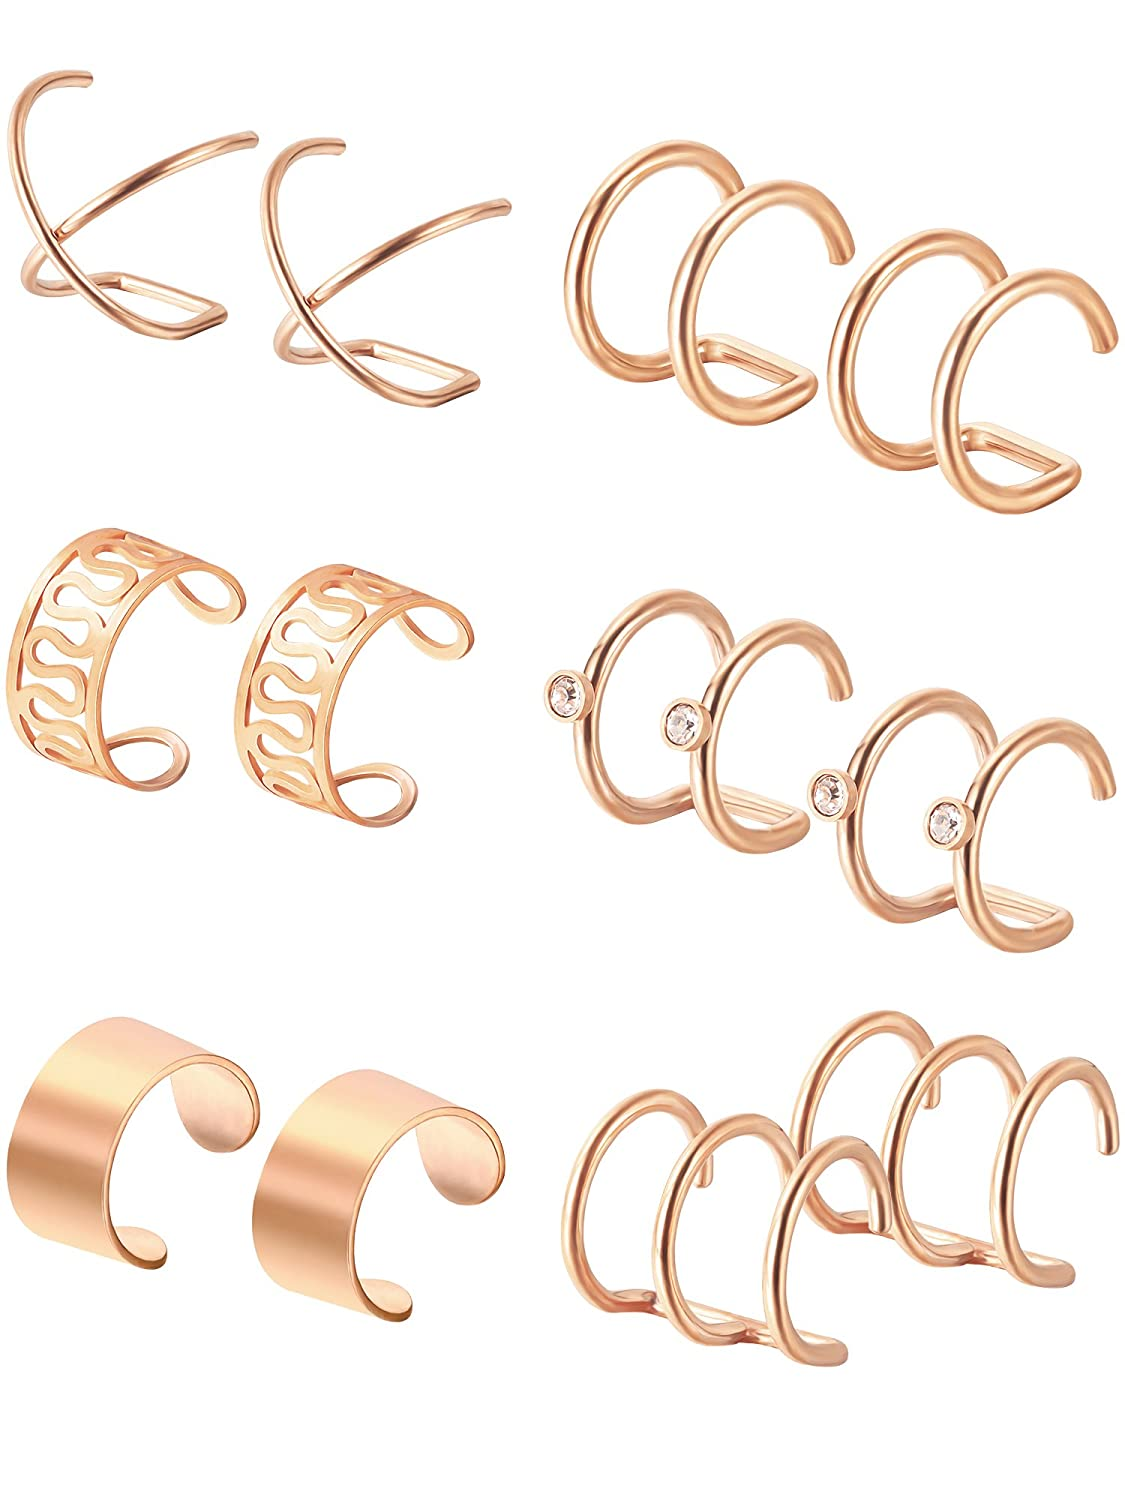 Hestya 6 Pairs Stainless Steel Ear Clips Non Piercing Earrings Hoop Ear Cuffs Cartilage Ear Clips Set for Men Women, 6 Various Styles 6 Various Styles (Gold) Hestya-Ear Clips-01